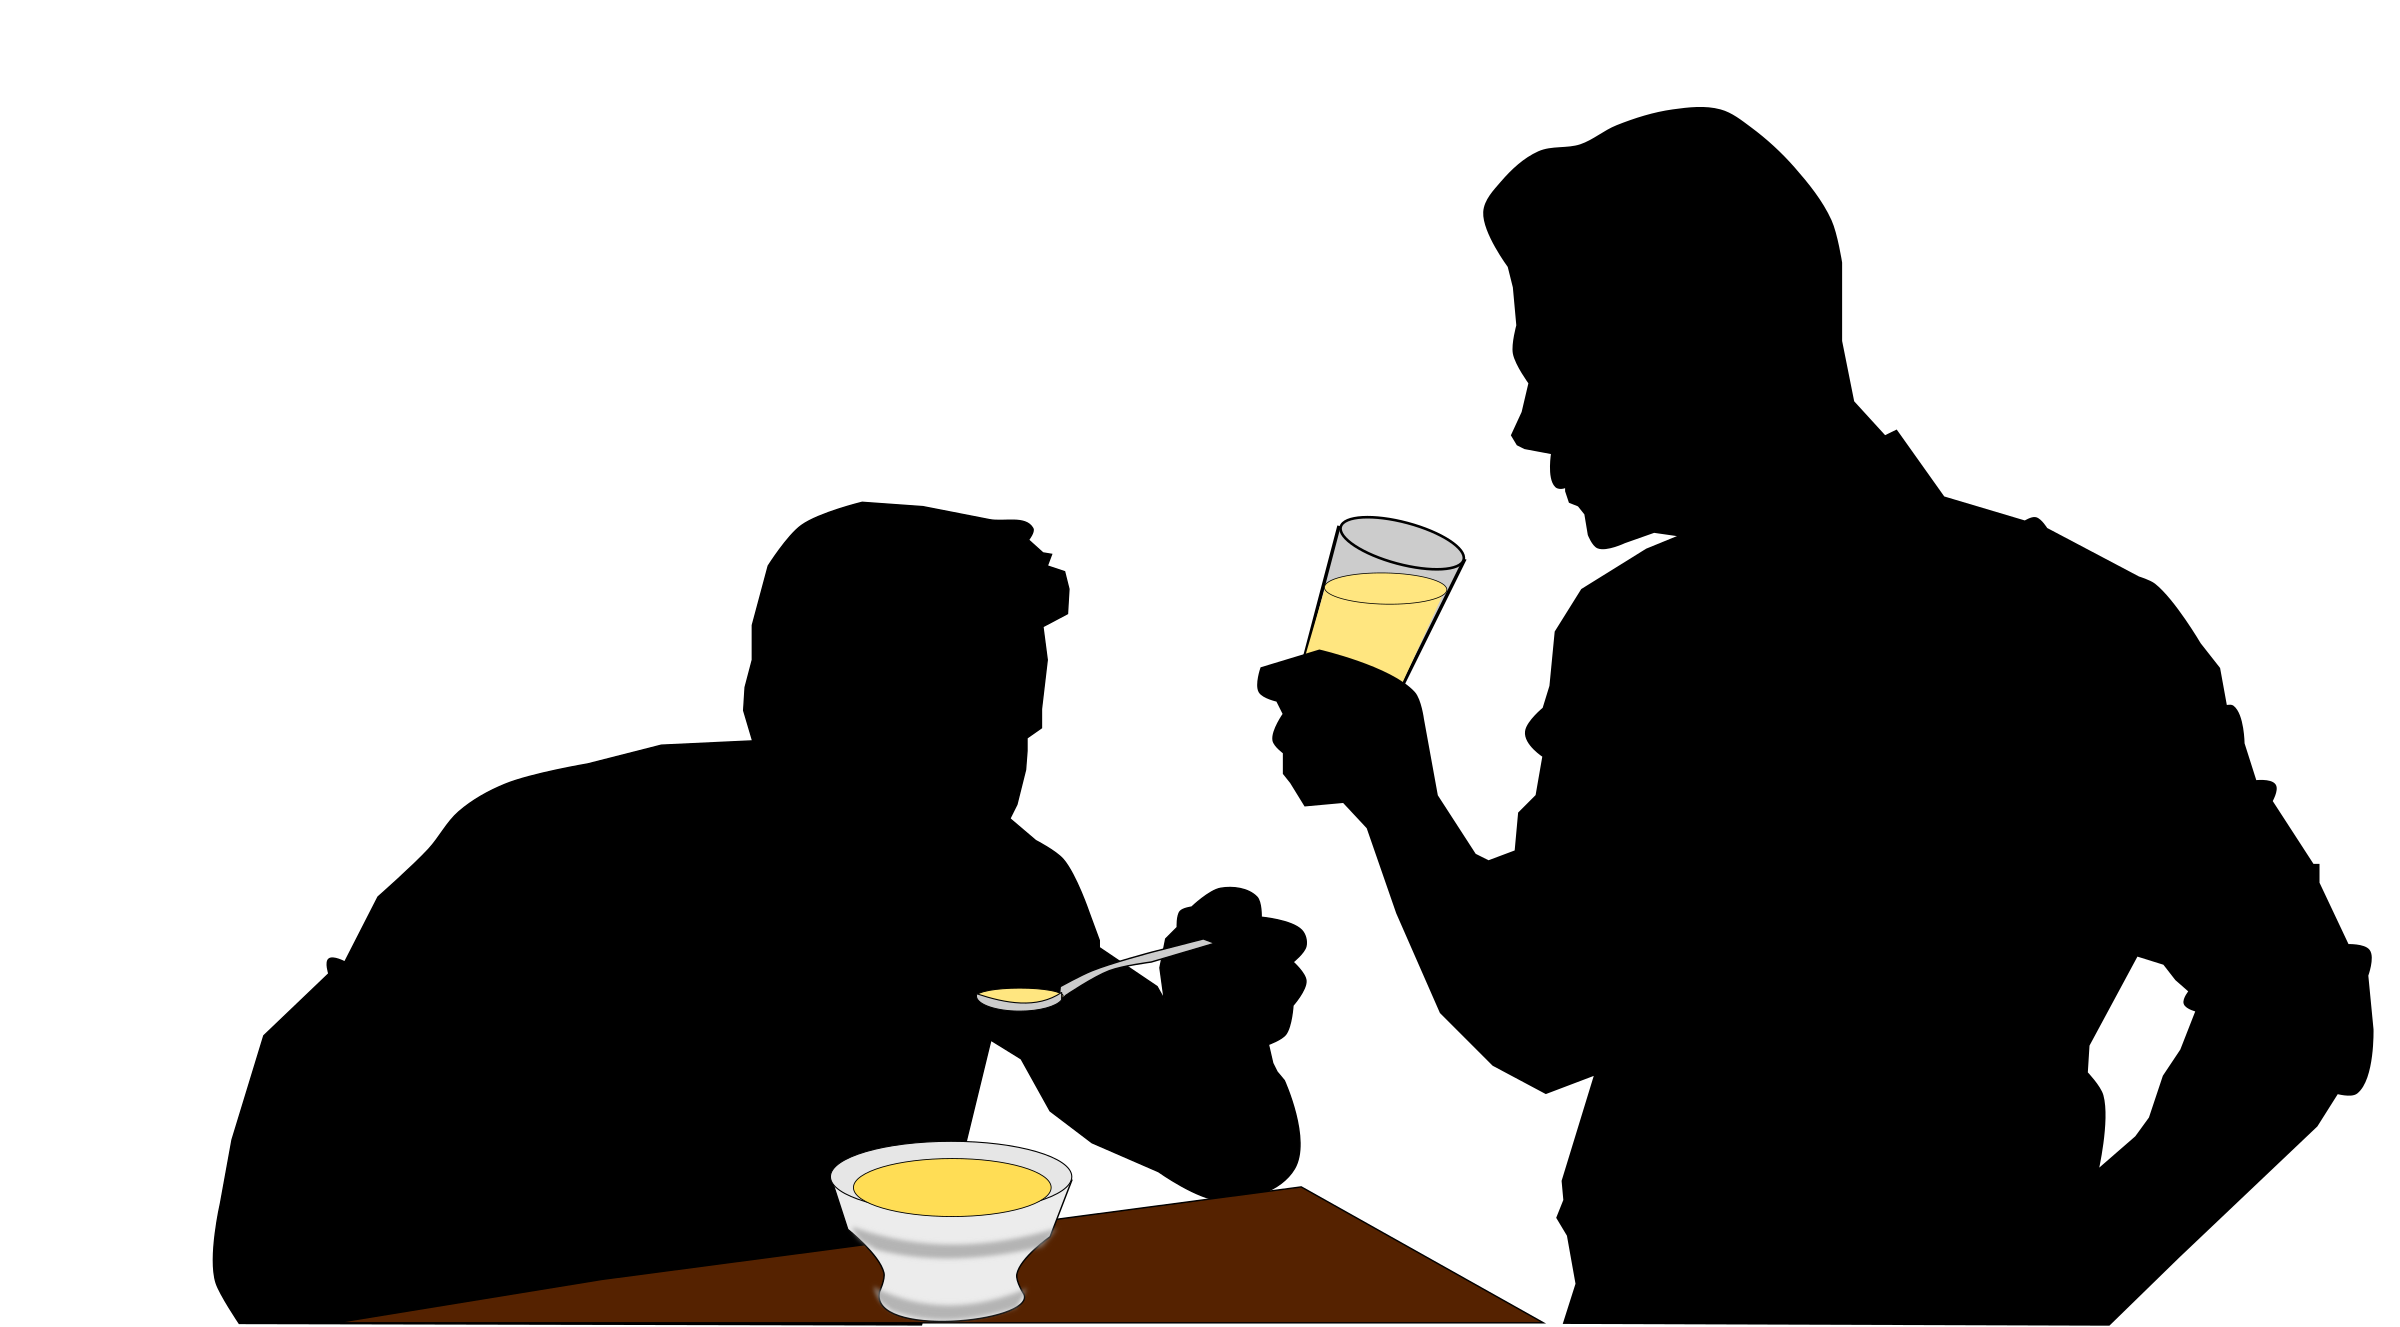 Alcohol gif png. Eating and drinking icons